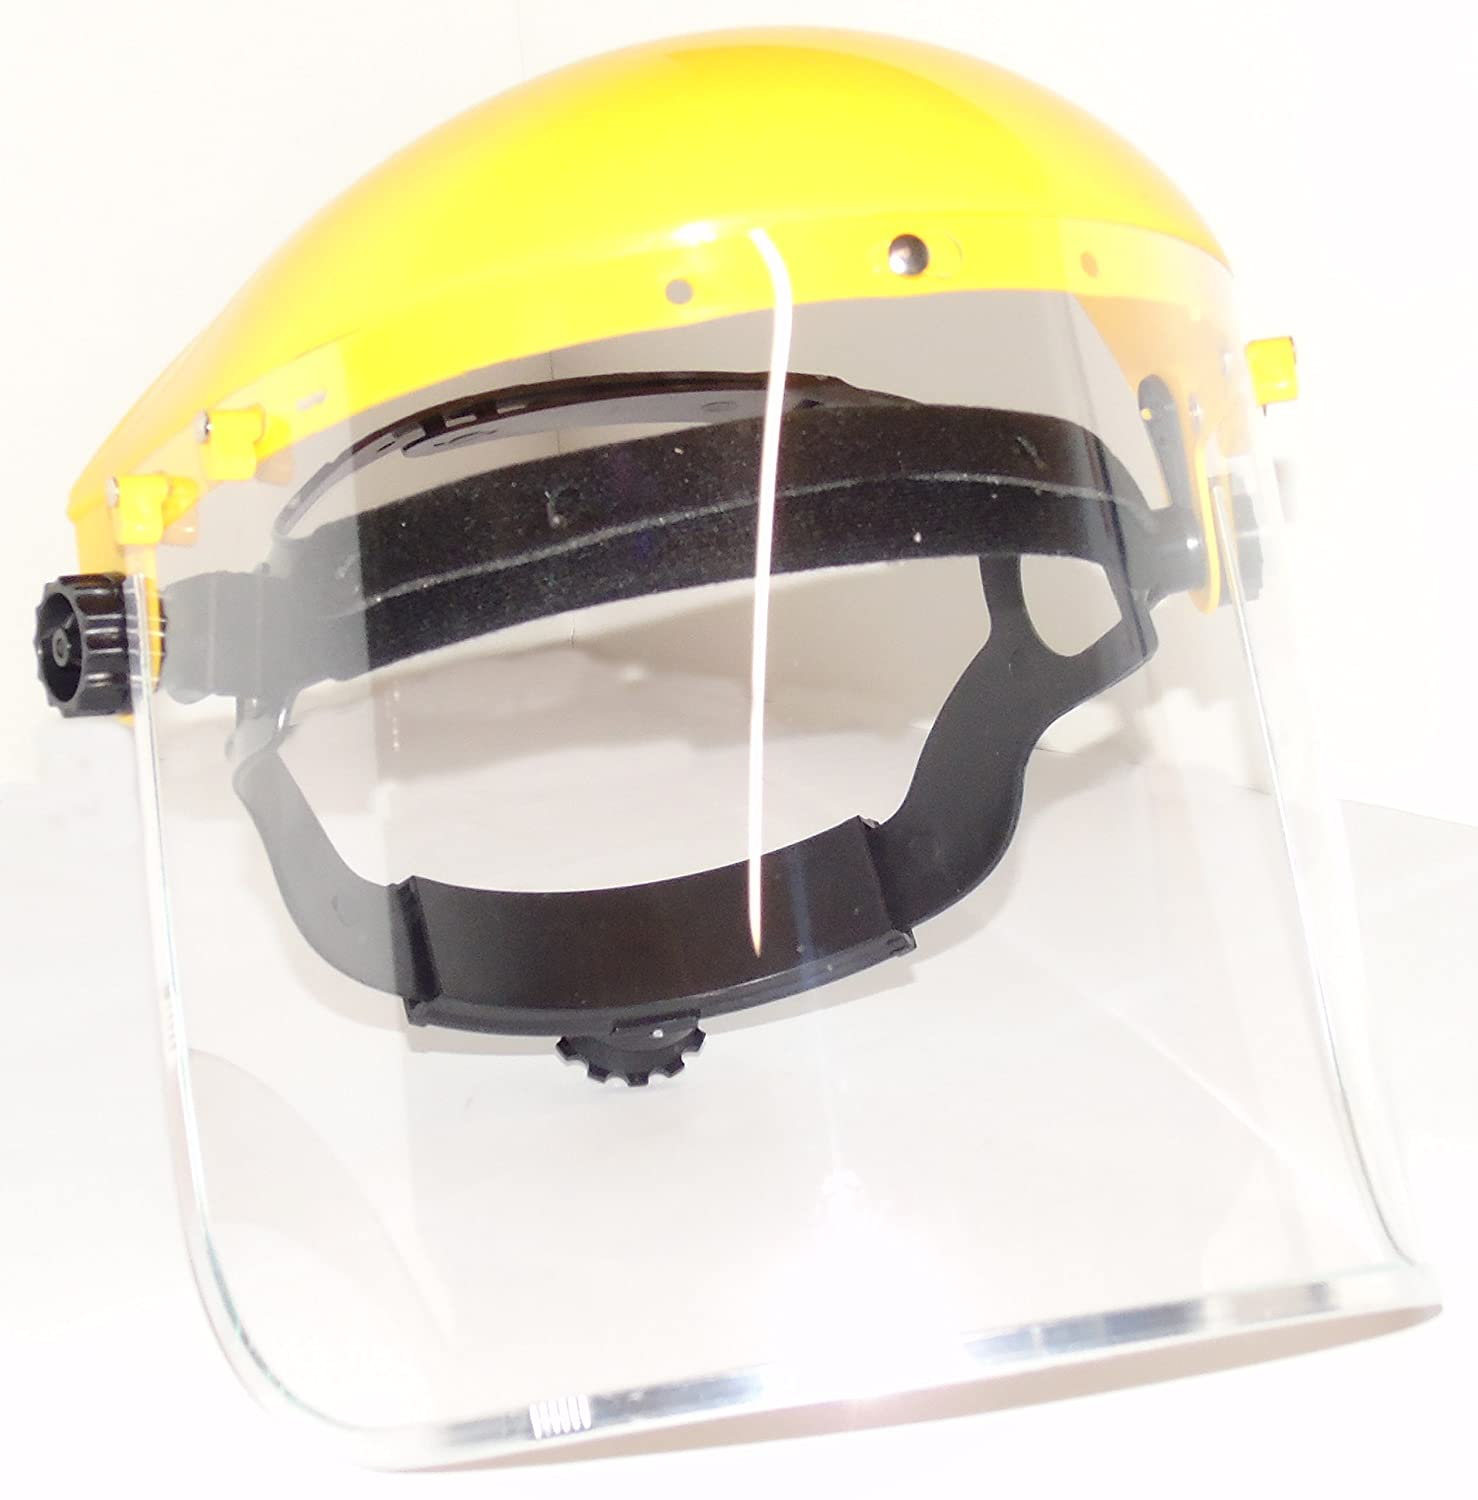 ESENO Industrial Safety Face Shield and Wide Visor … (Replacement Mesh Visor x 2)